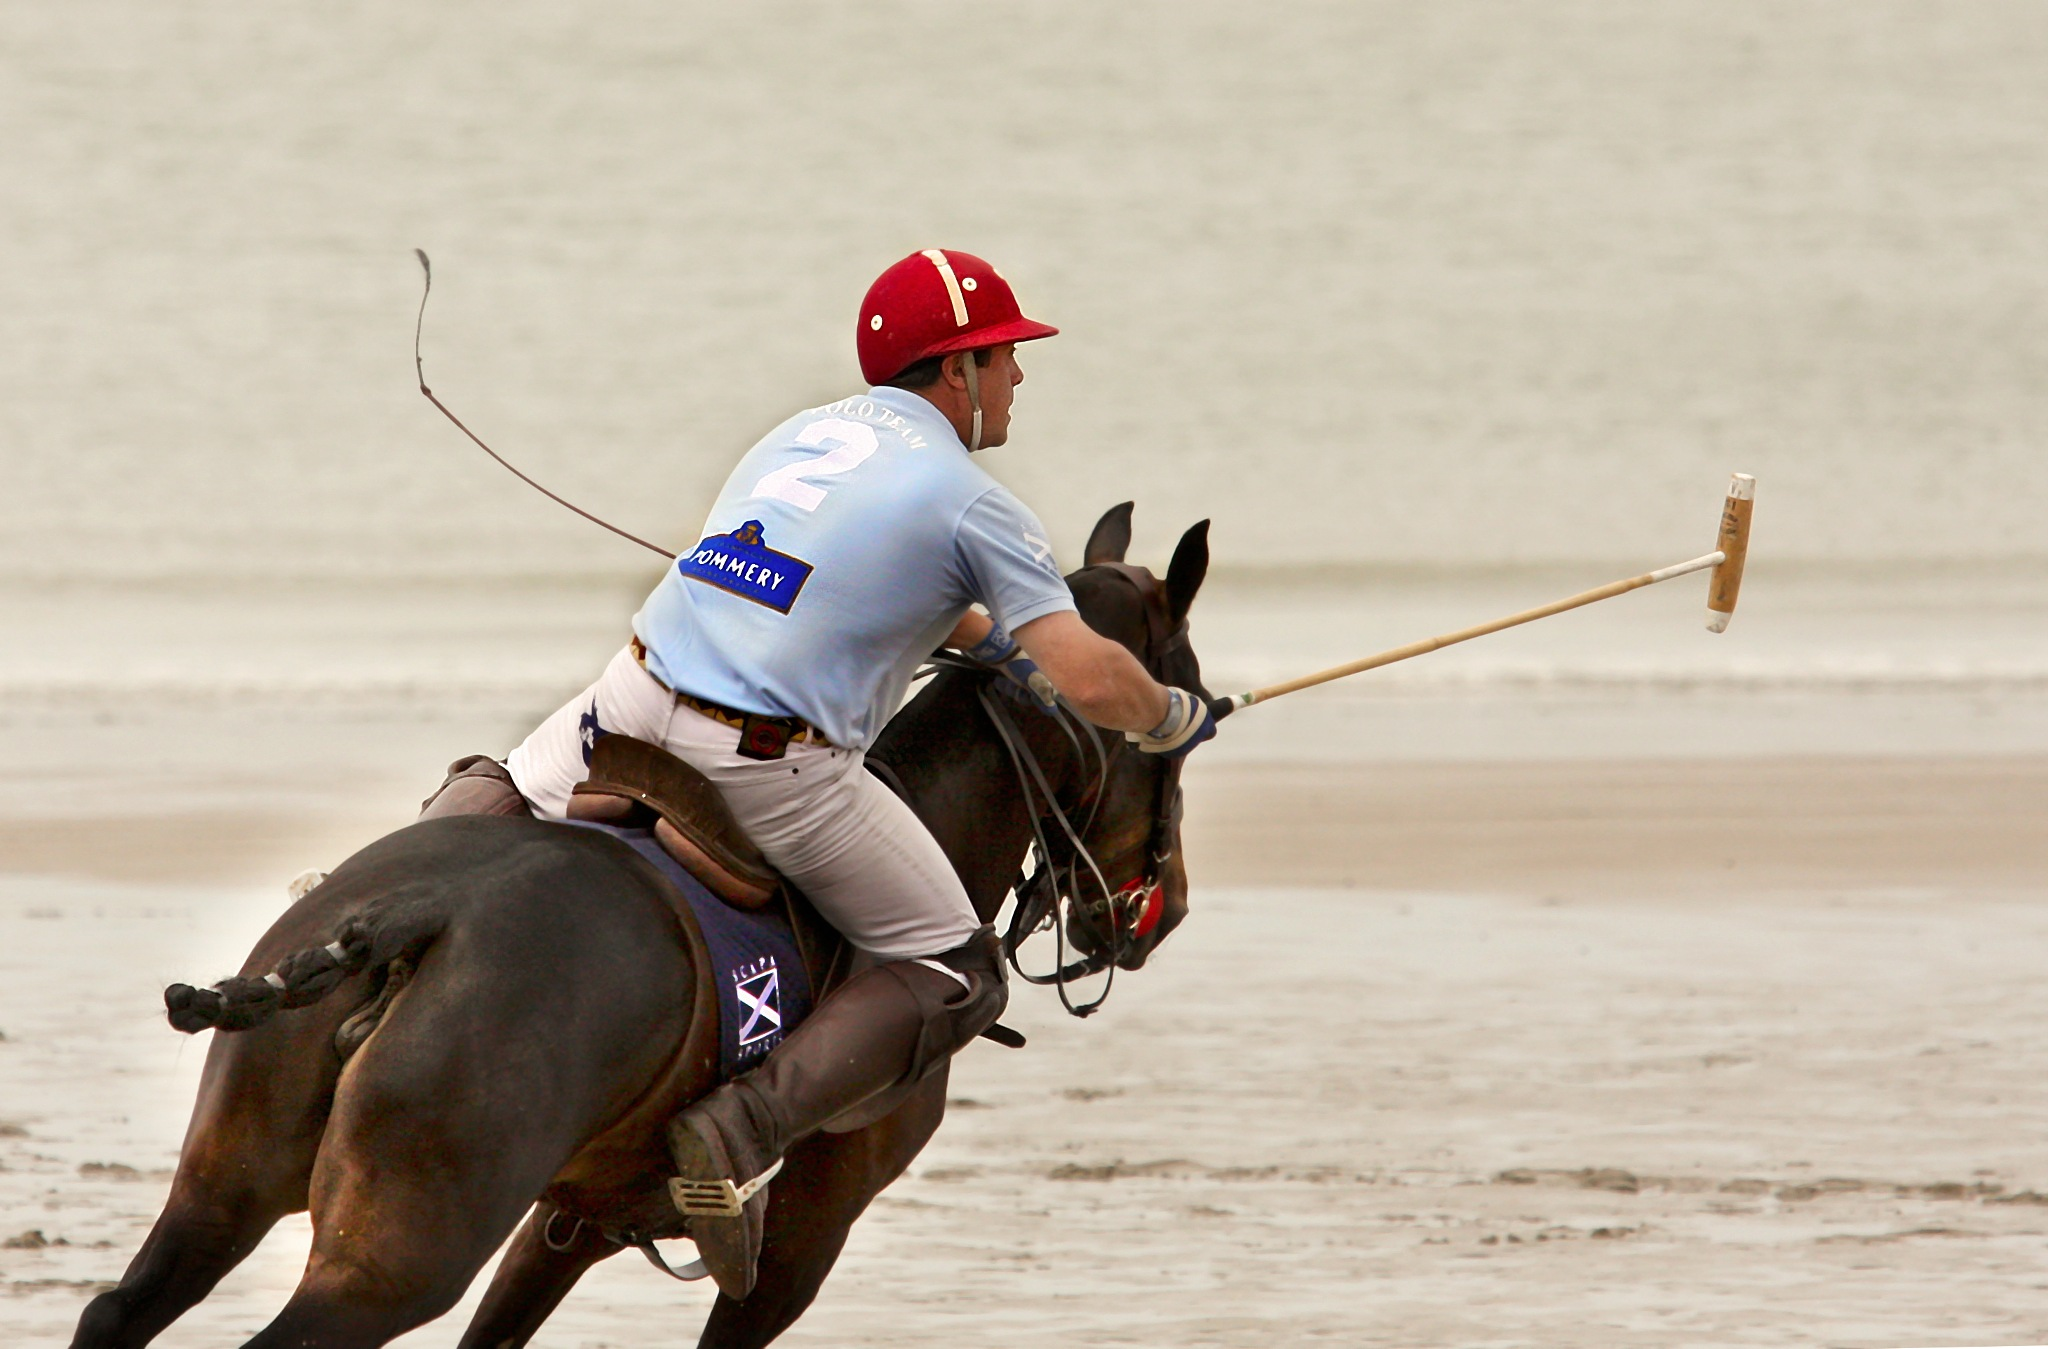 beach polo by Renaat